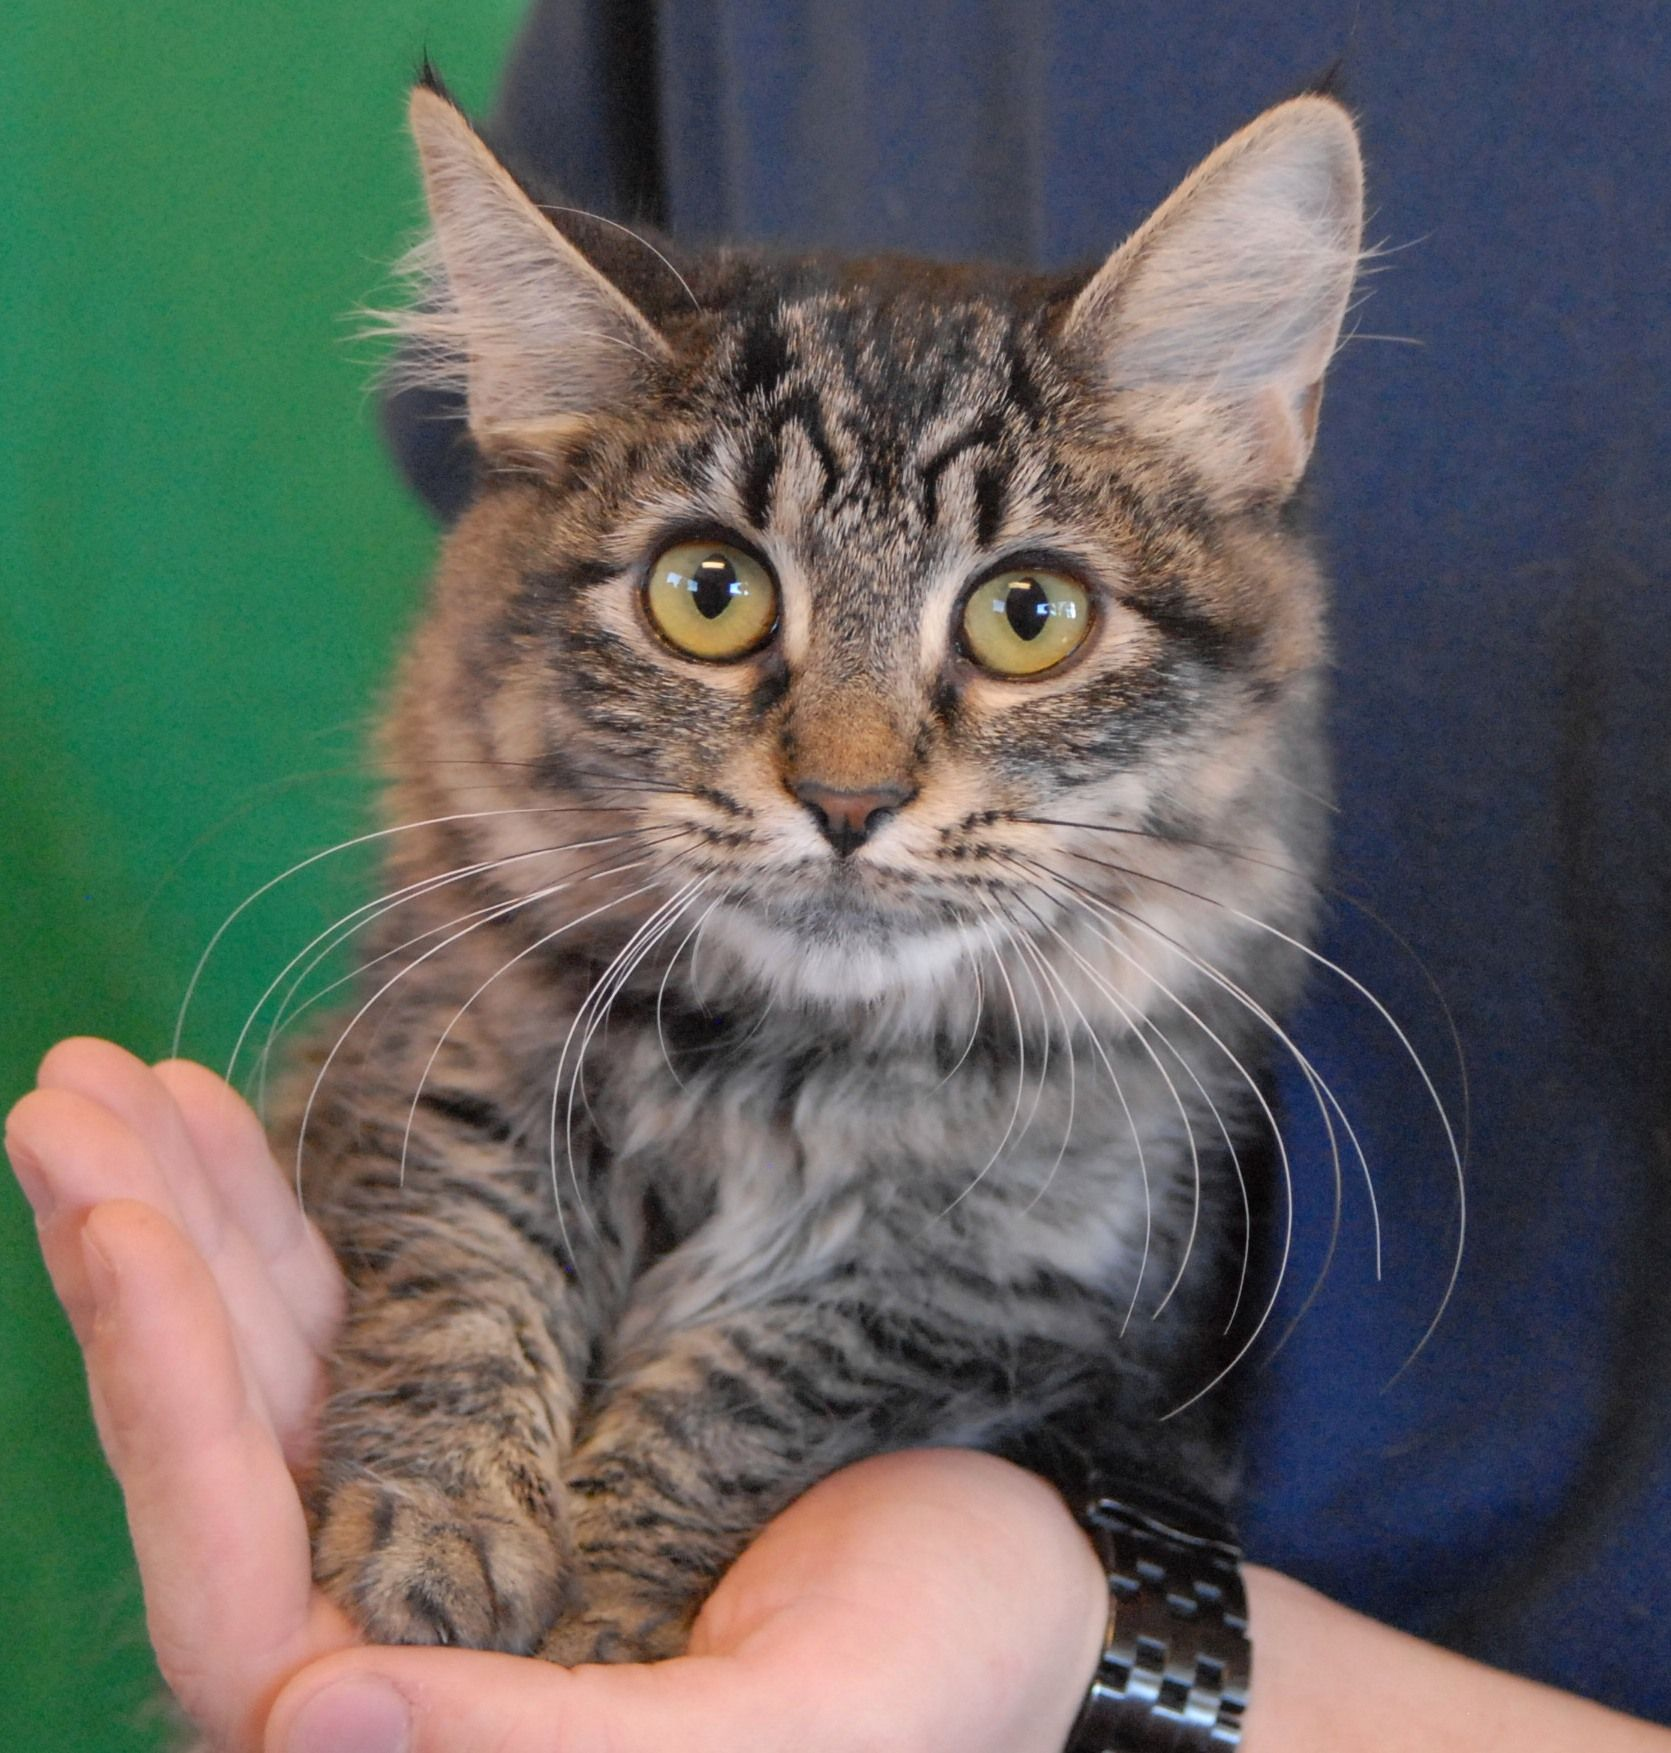 Pocahontas Loves Chin Scratches Pouncing On Her Toys Playing With Other Cats And Purring In Your Arms She Is A Go Kitten Proofing Cat Adoption Cat Shelter